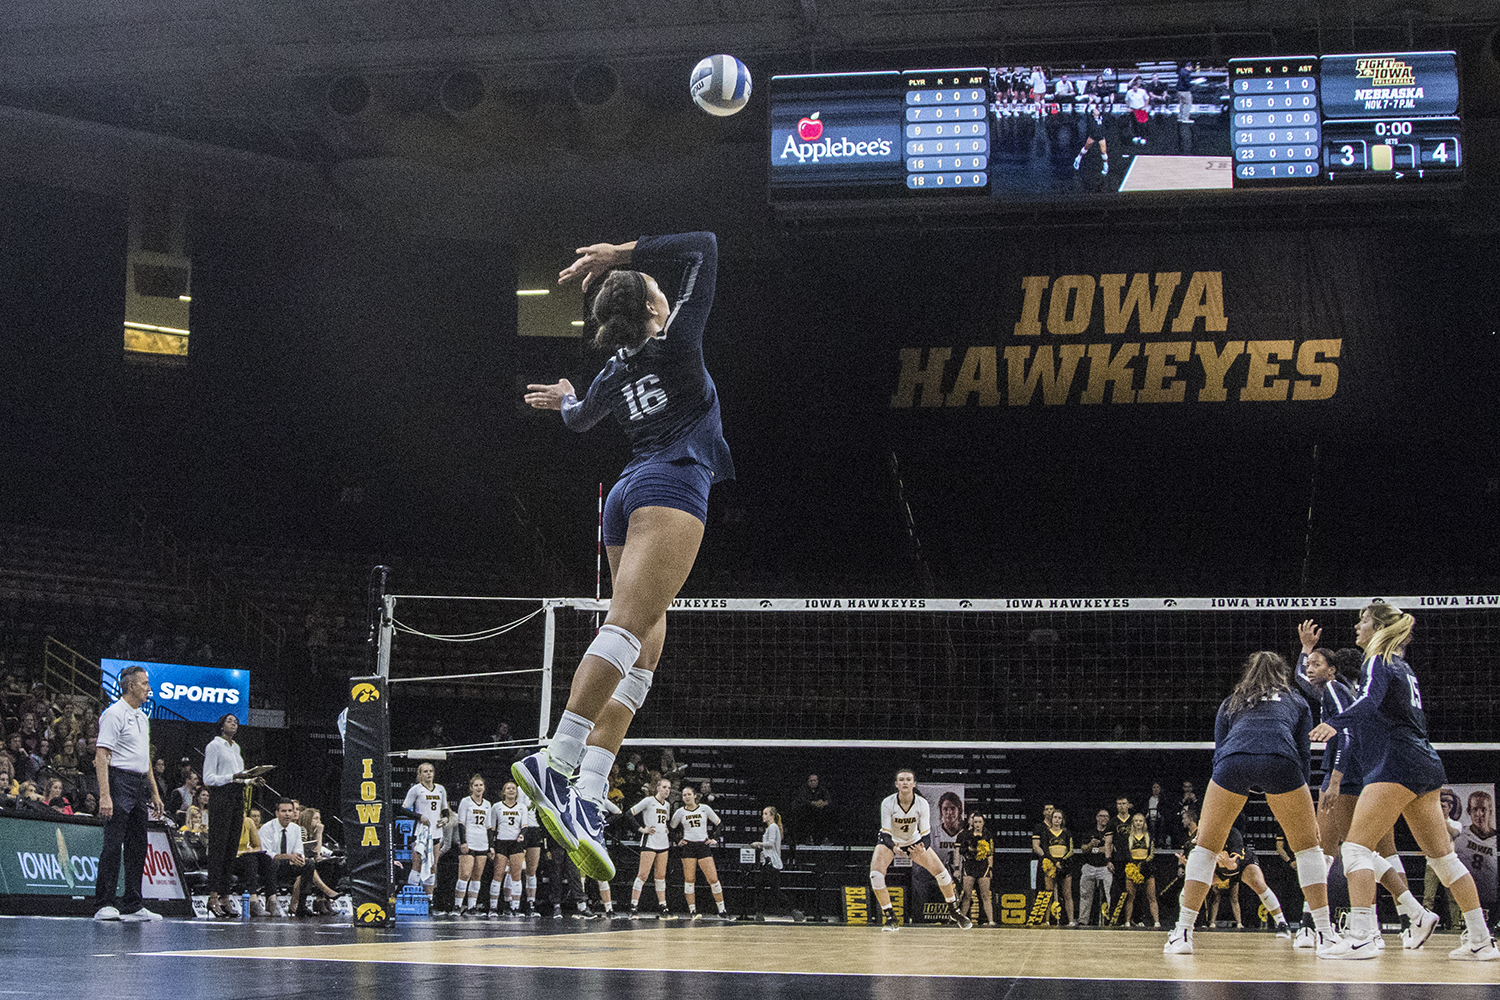 Penn State freshman Serena Gray serves during a volleyball match between Iowa and Penn State at Carver-Hawkeye Arena on Saturday, Nov. 3, 2018. The Hawkeyes were shut out by the Nittany Lions, 3-0.